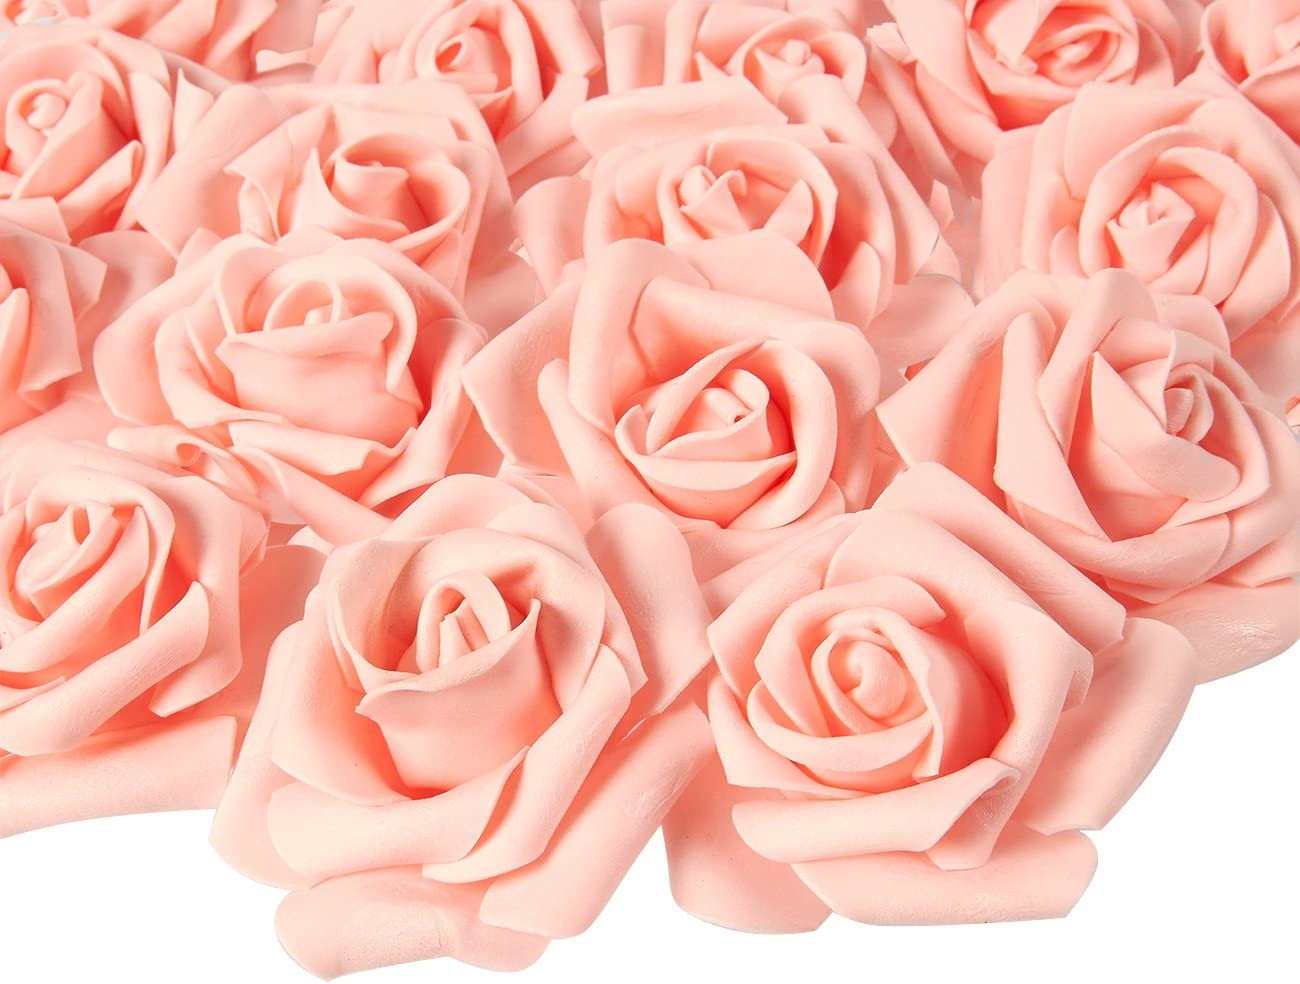 Juvale Rose Flower Heads - 100-Pack Stemless Artificial Roses, Perfect Wedding Decorations, Baby Showers, Crafts - Peach, 3 x 1.25 x 3 inches